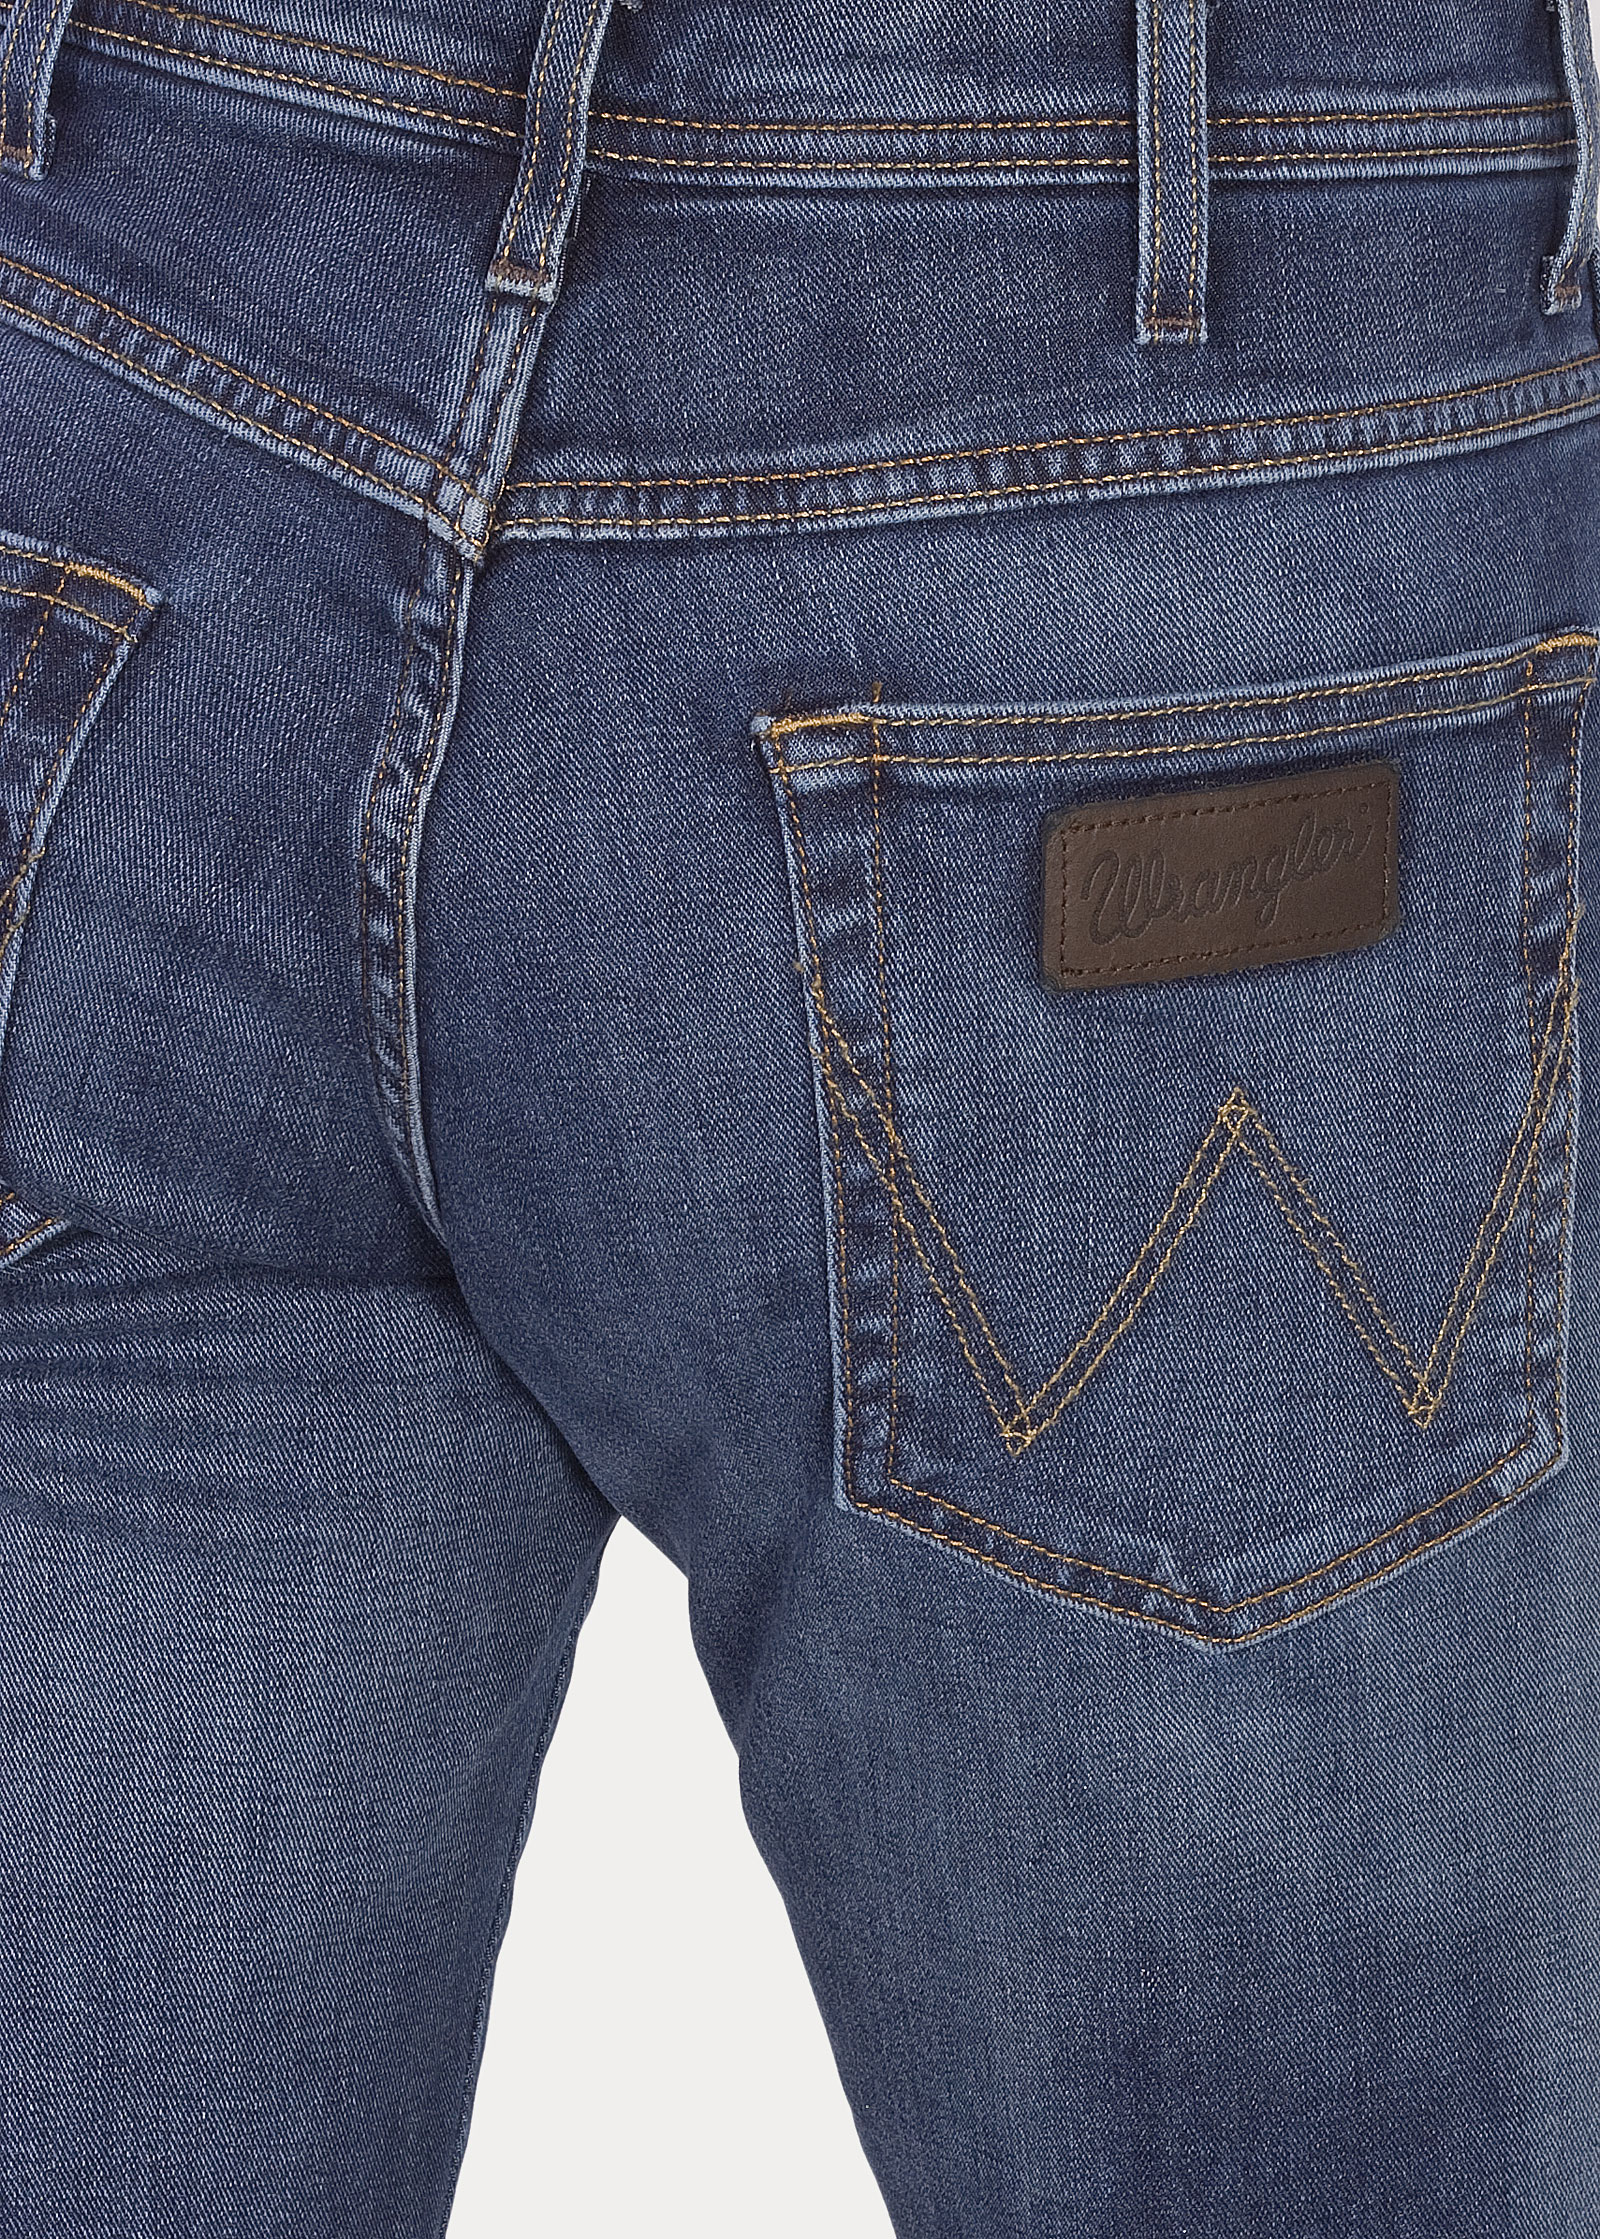 Wrangler® Arizona Stretch - Burnt Blue - elements